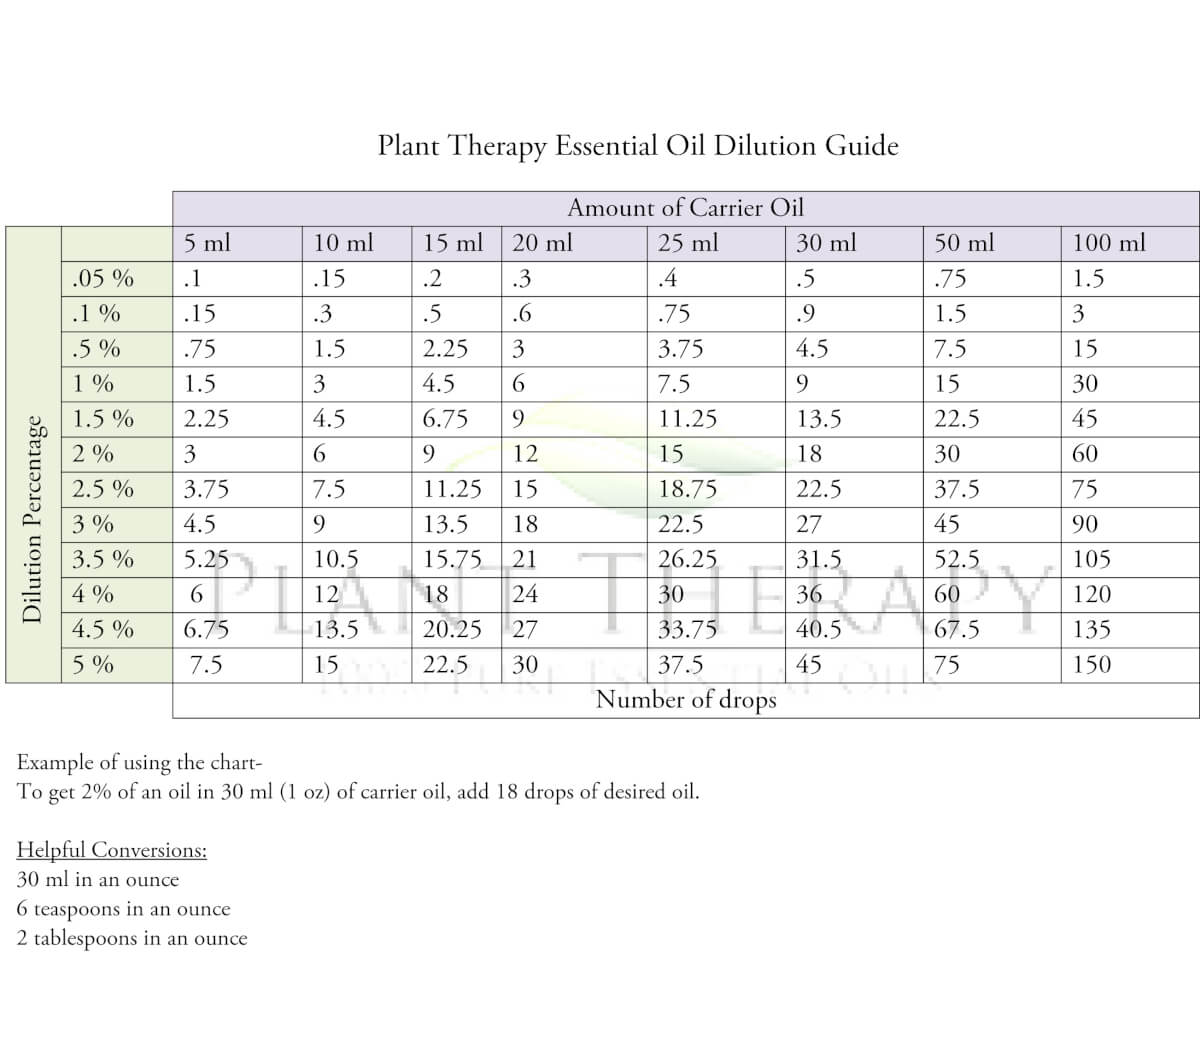 Plant Therapy Dilution Guide